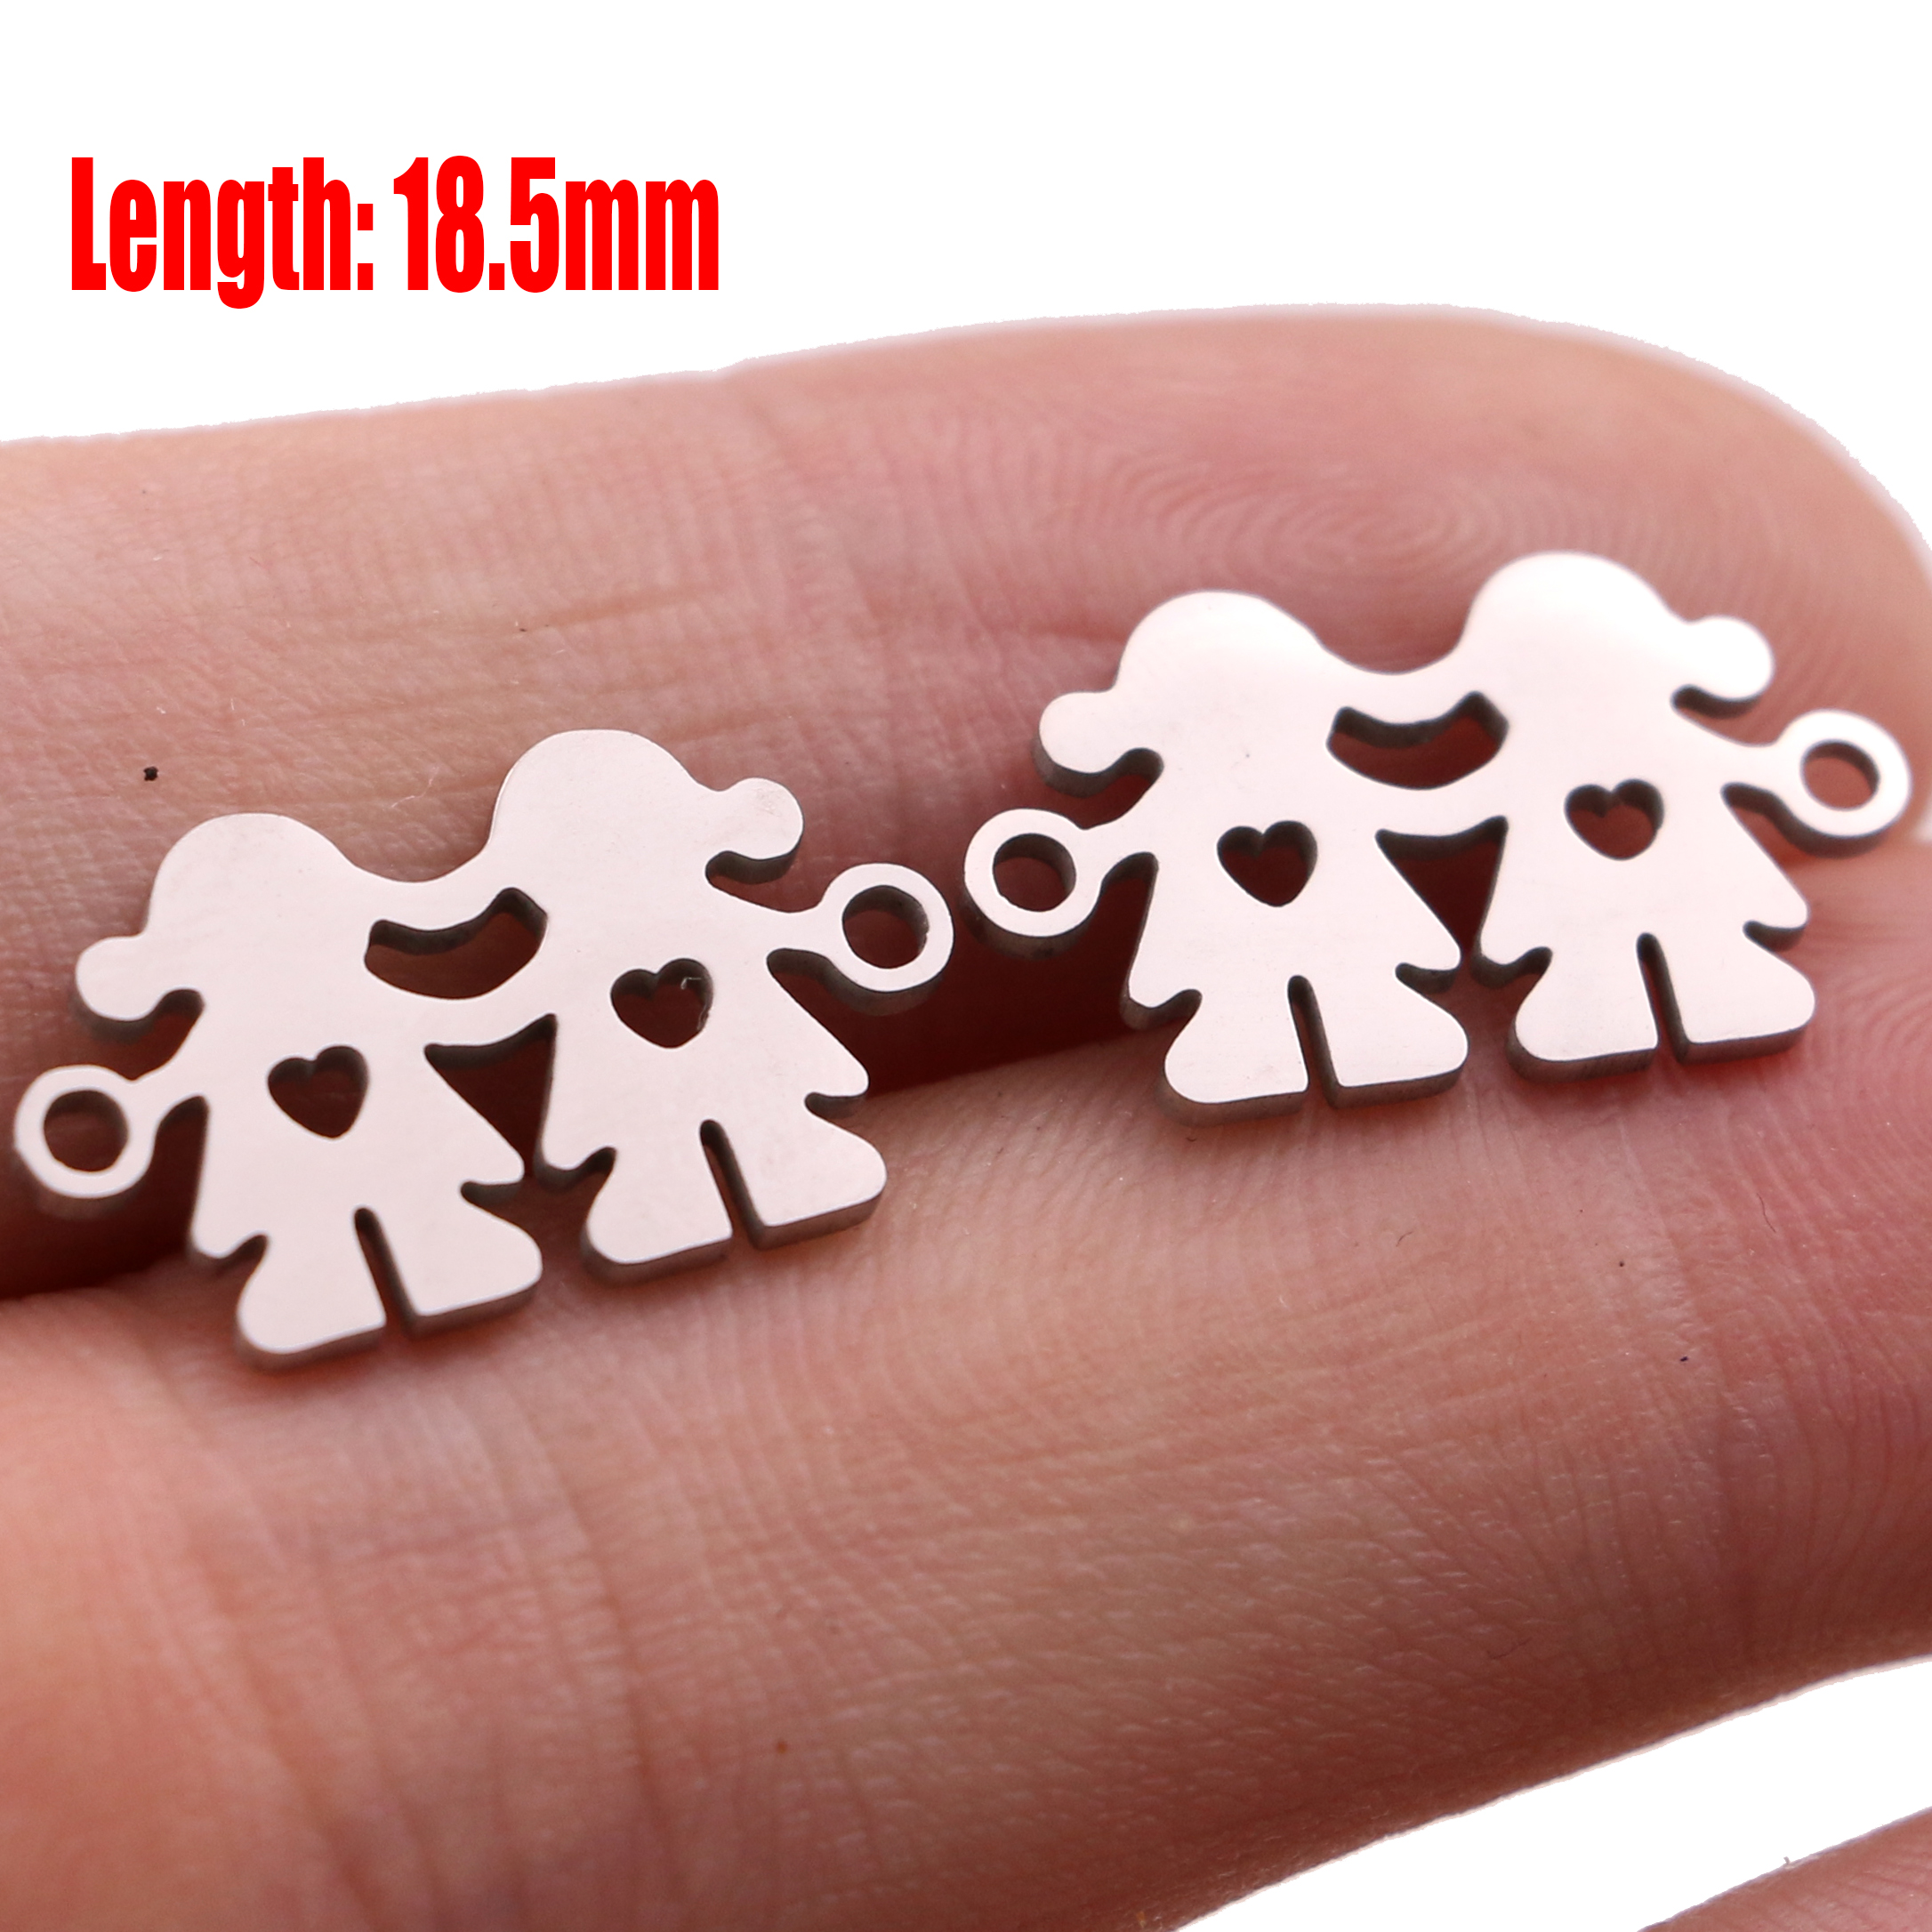 5pcs Family Chain Stainless Steel Pendant Necklace Parents and Children Necklaces Gold/steel Jewelry Gift for Mom Dad New Twice - Цвет: Steel 26